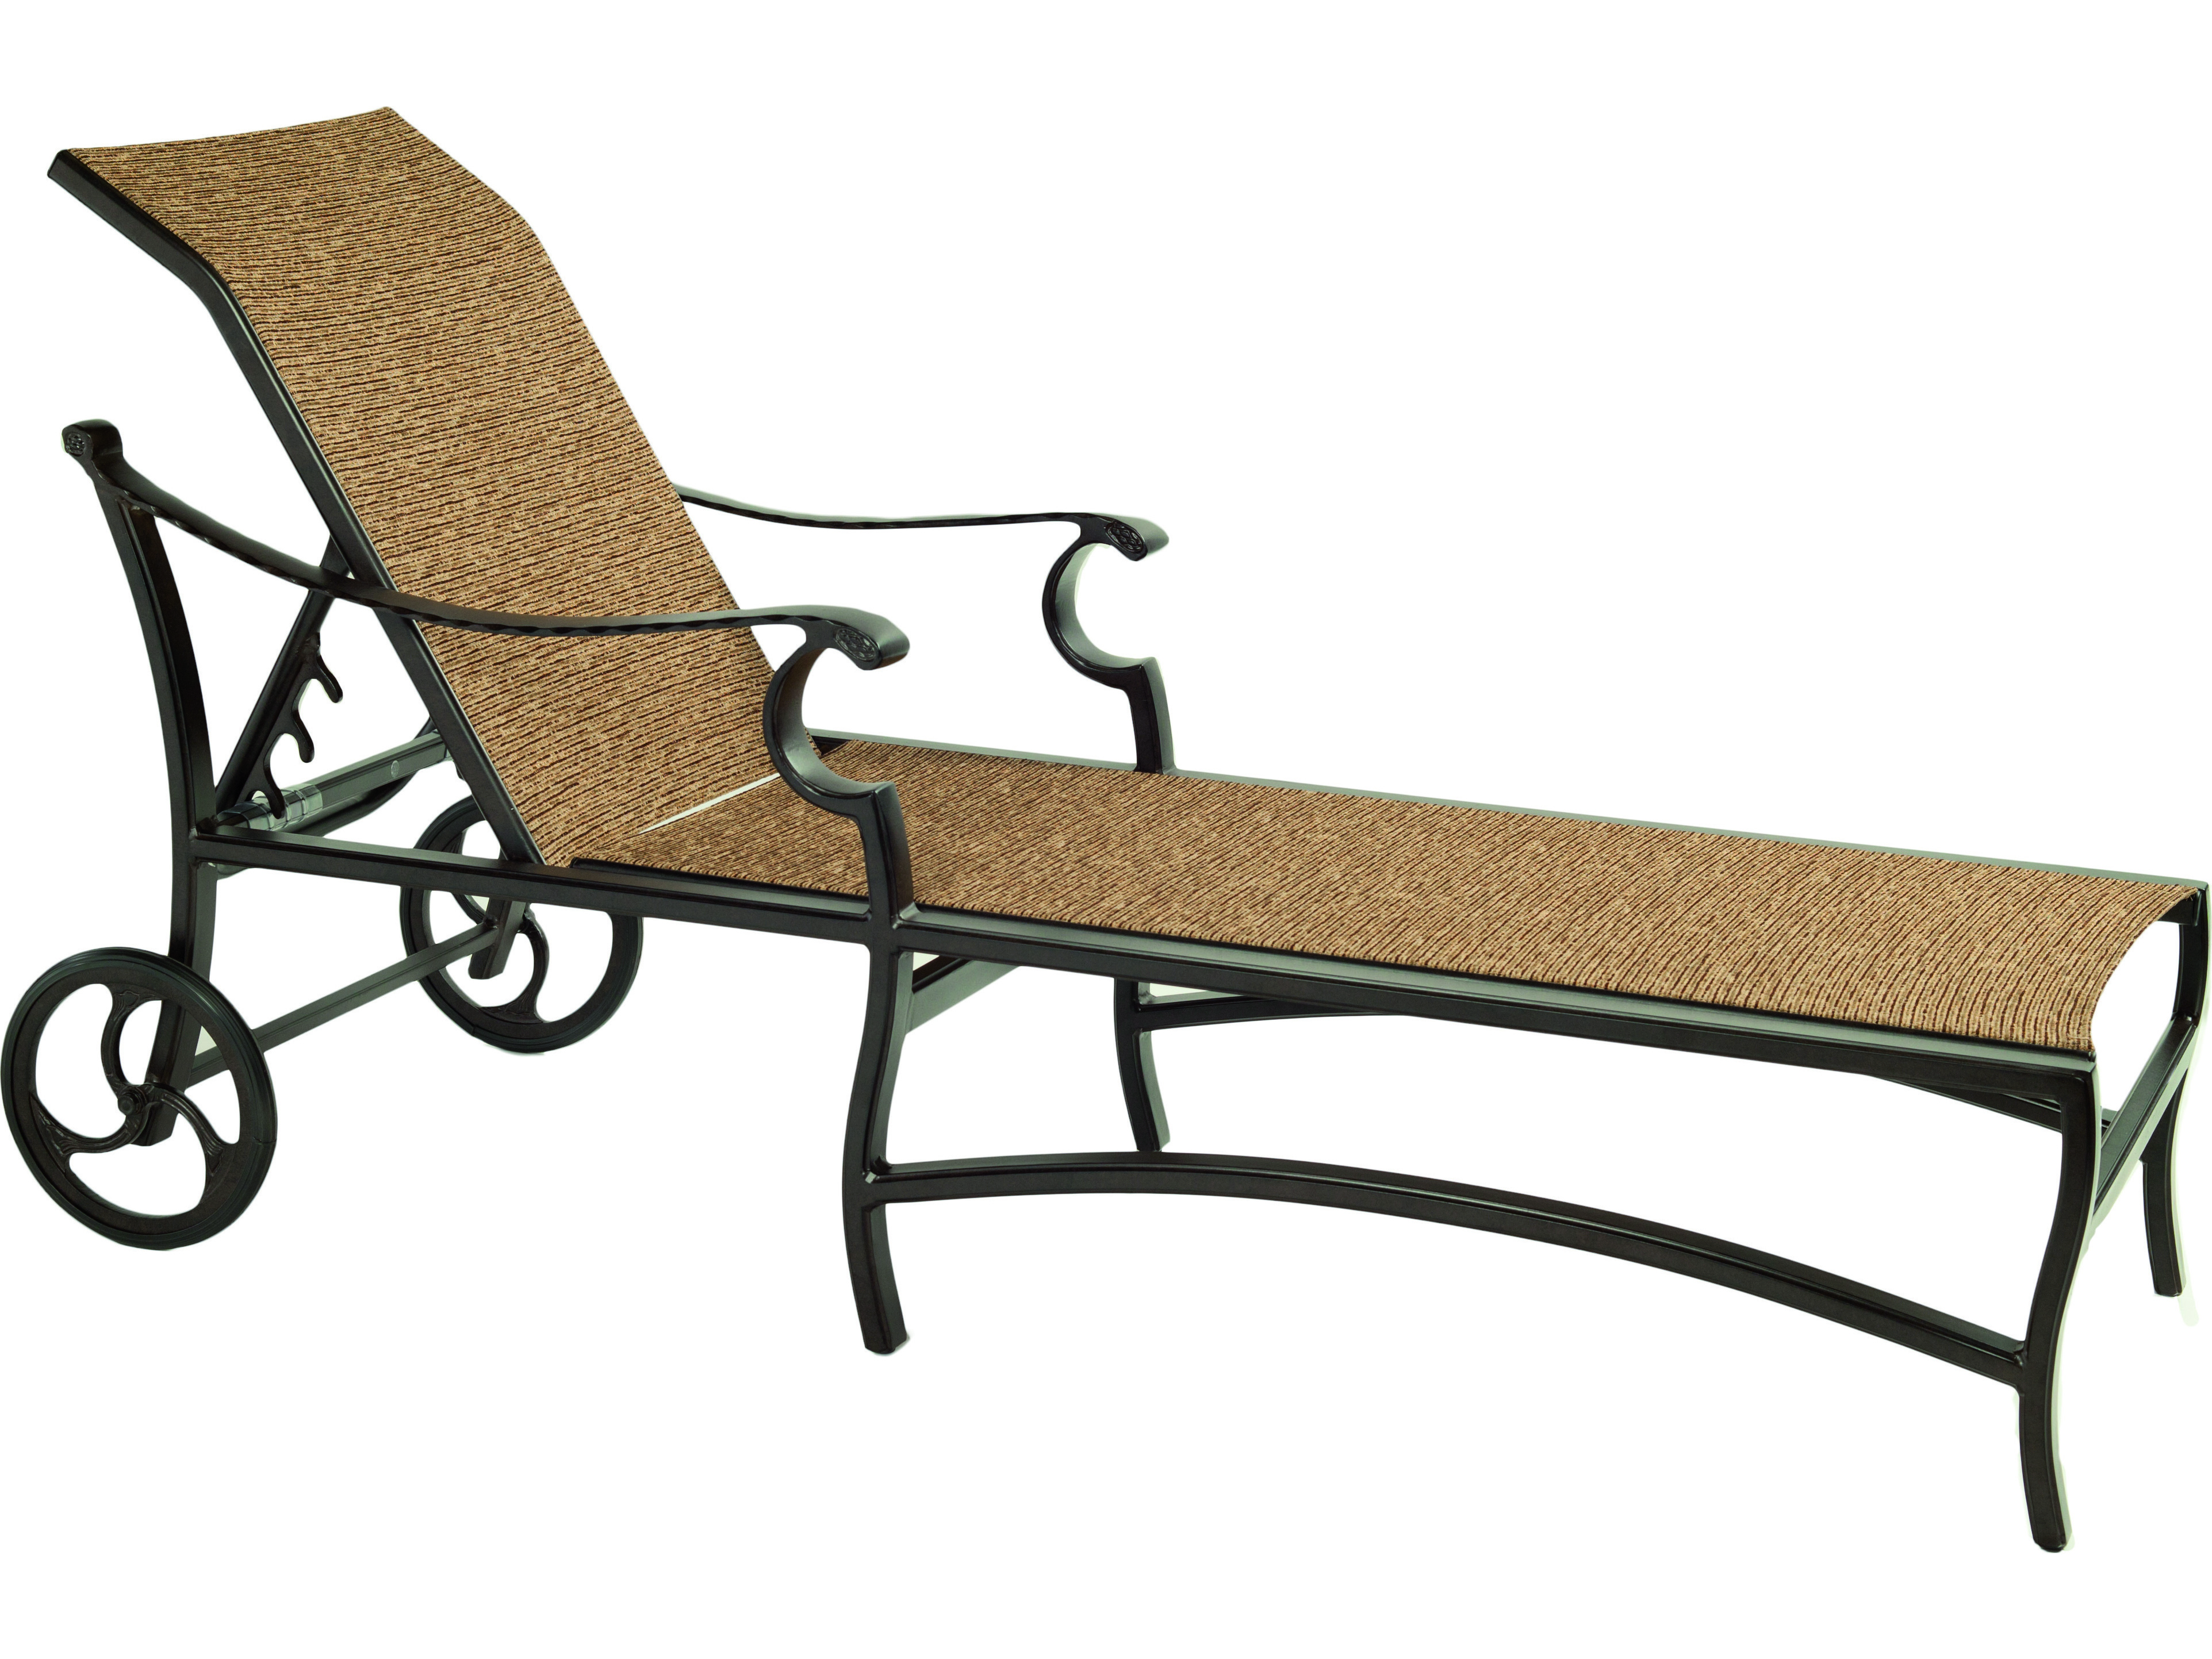 Castelle monterey sling cast aluminum adjustable chaise for Aluminum chaise lounge with wheels